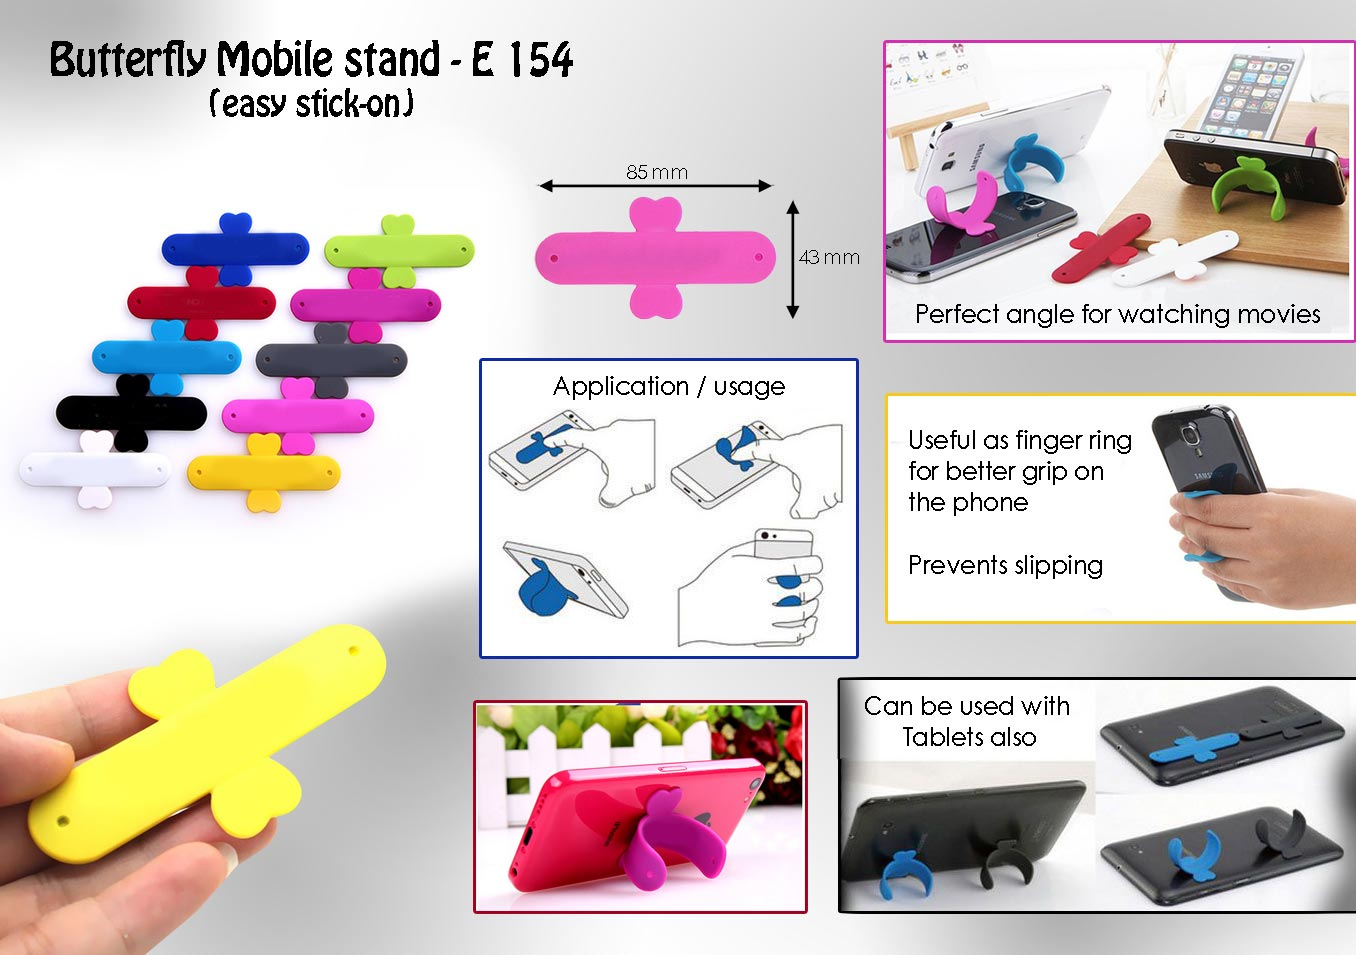 E154 - Butterfly Mobile stand